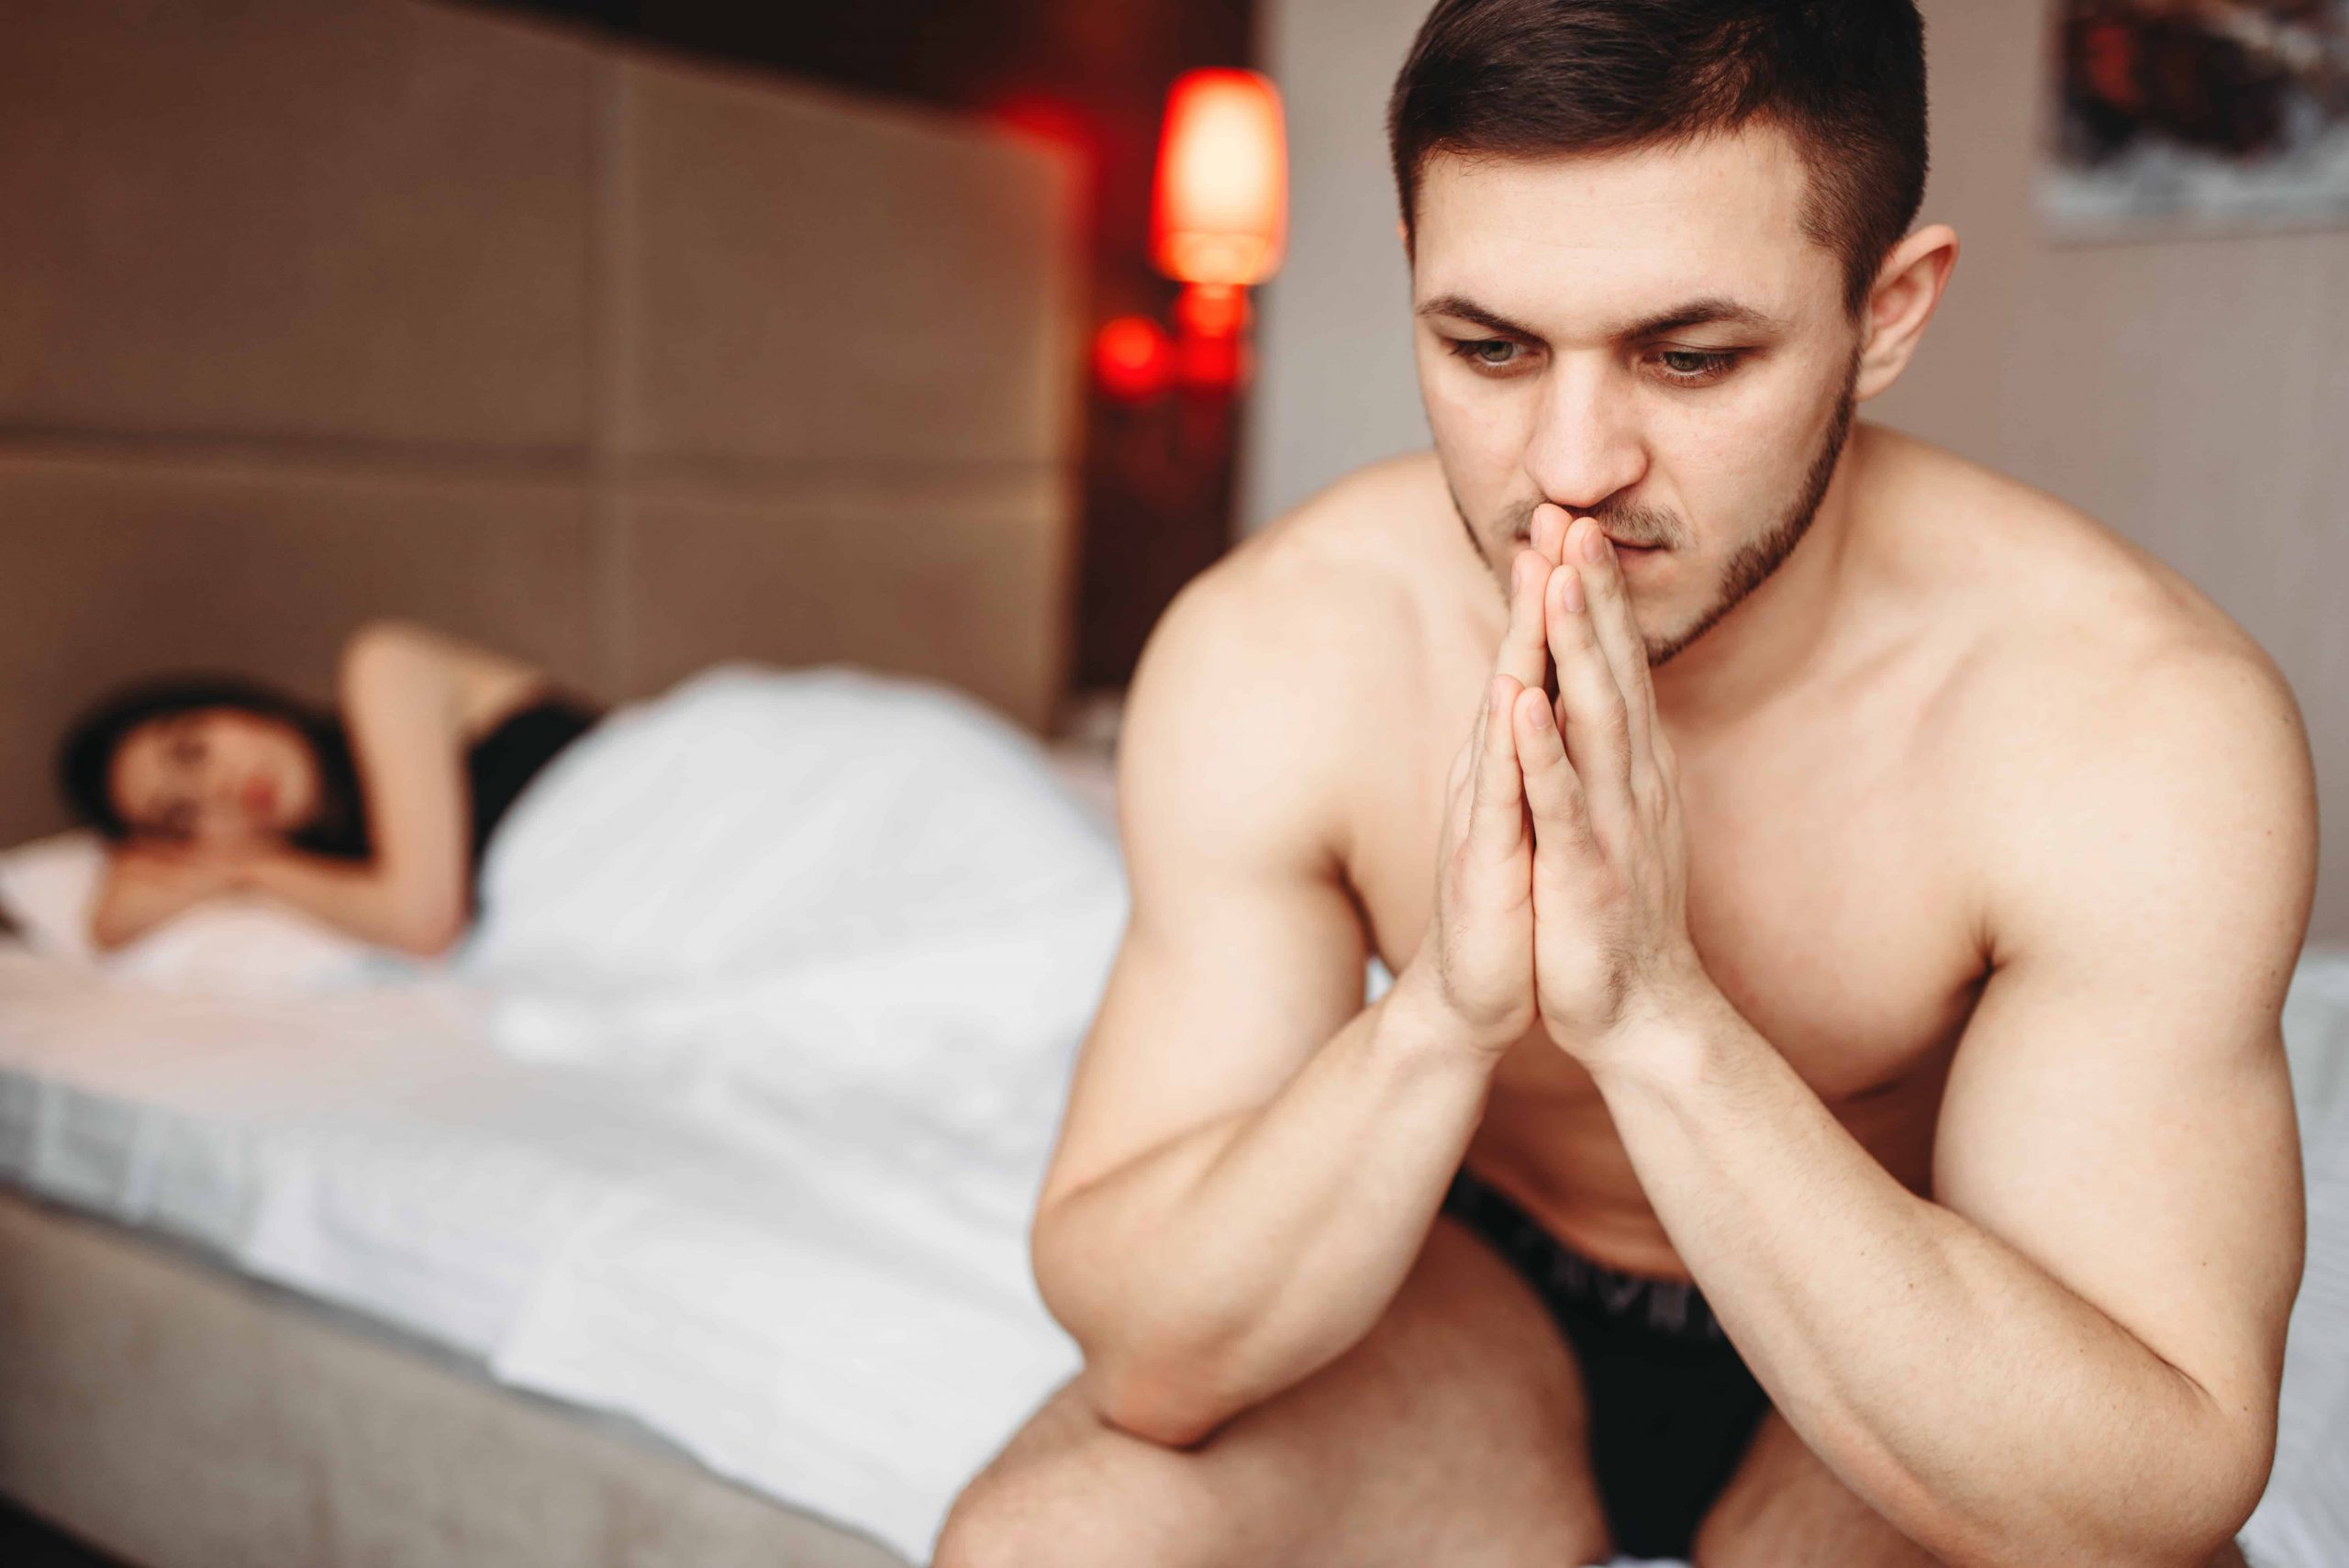 early-ejaculation-the-silent-killer-of-intimacy-between-spouses